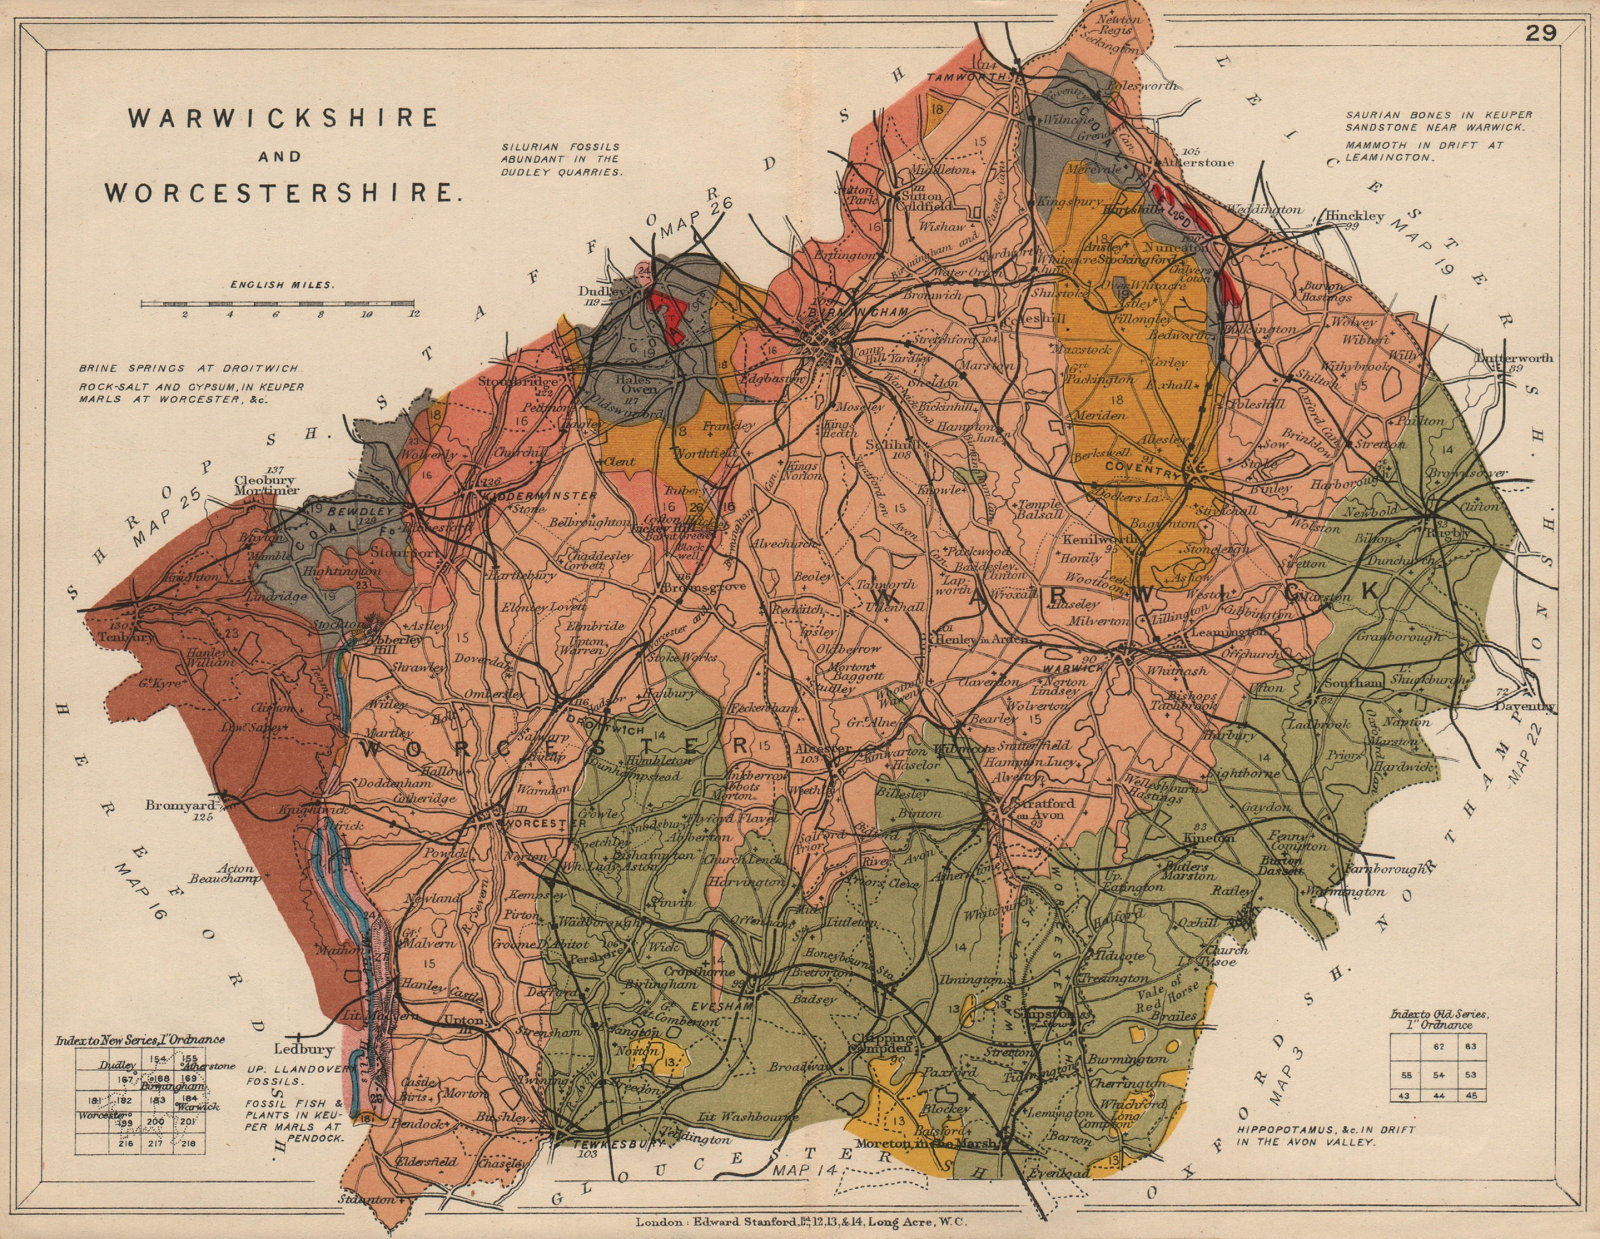 Associate Product WARWICKSHIRE AND WORCESTERSHIRE Geological map. STANFORD 1913 old antique